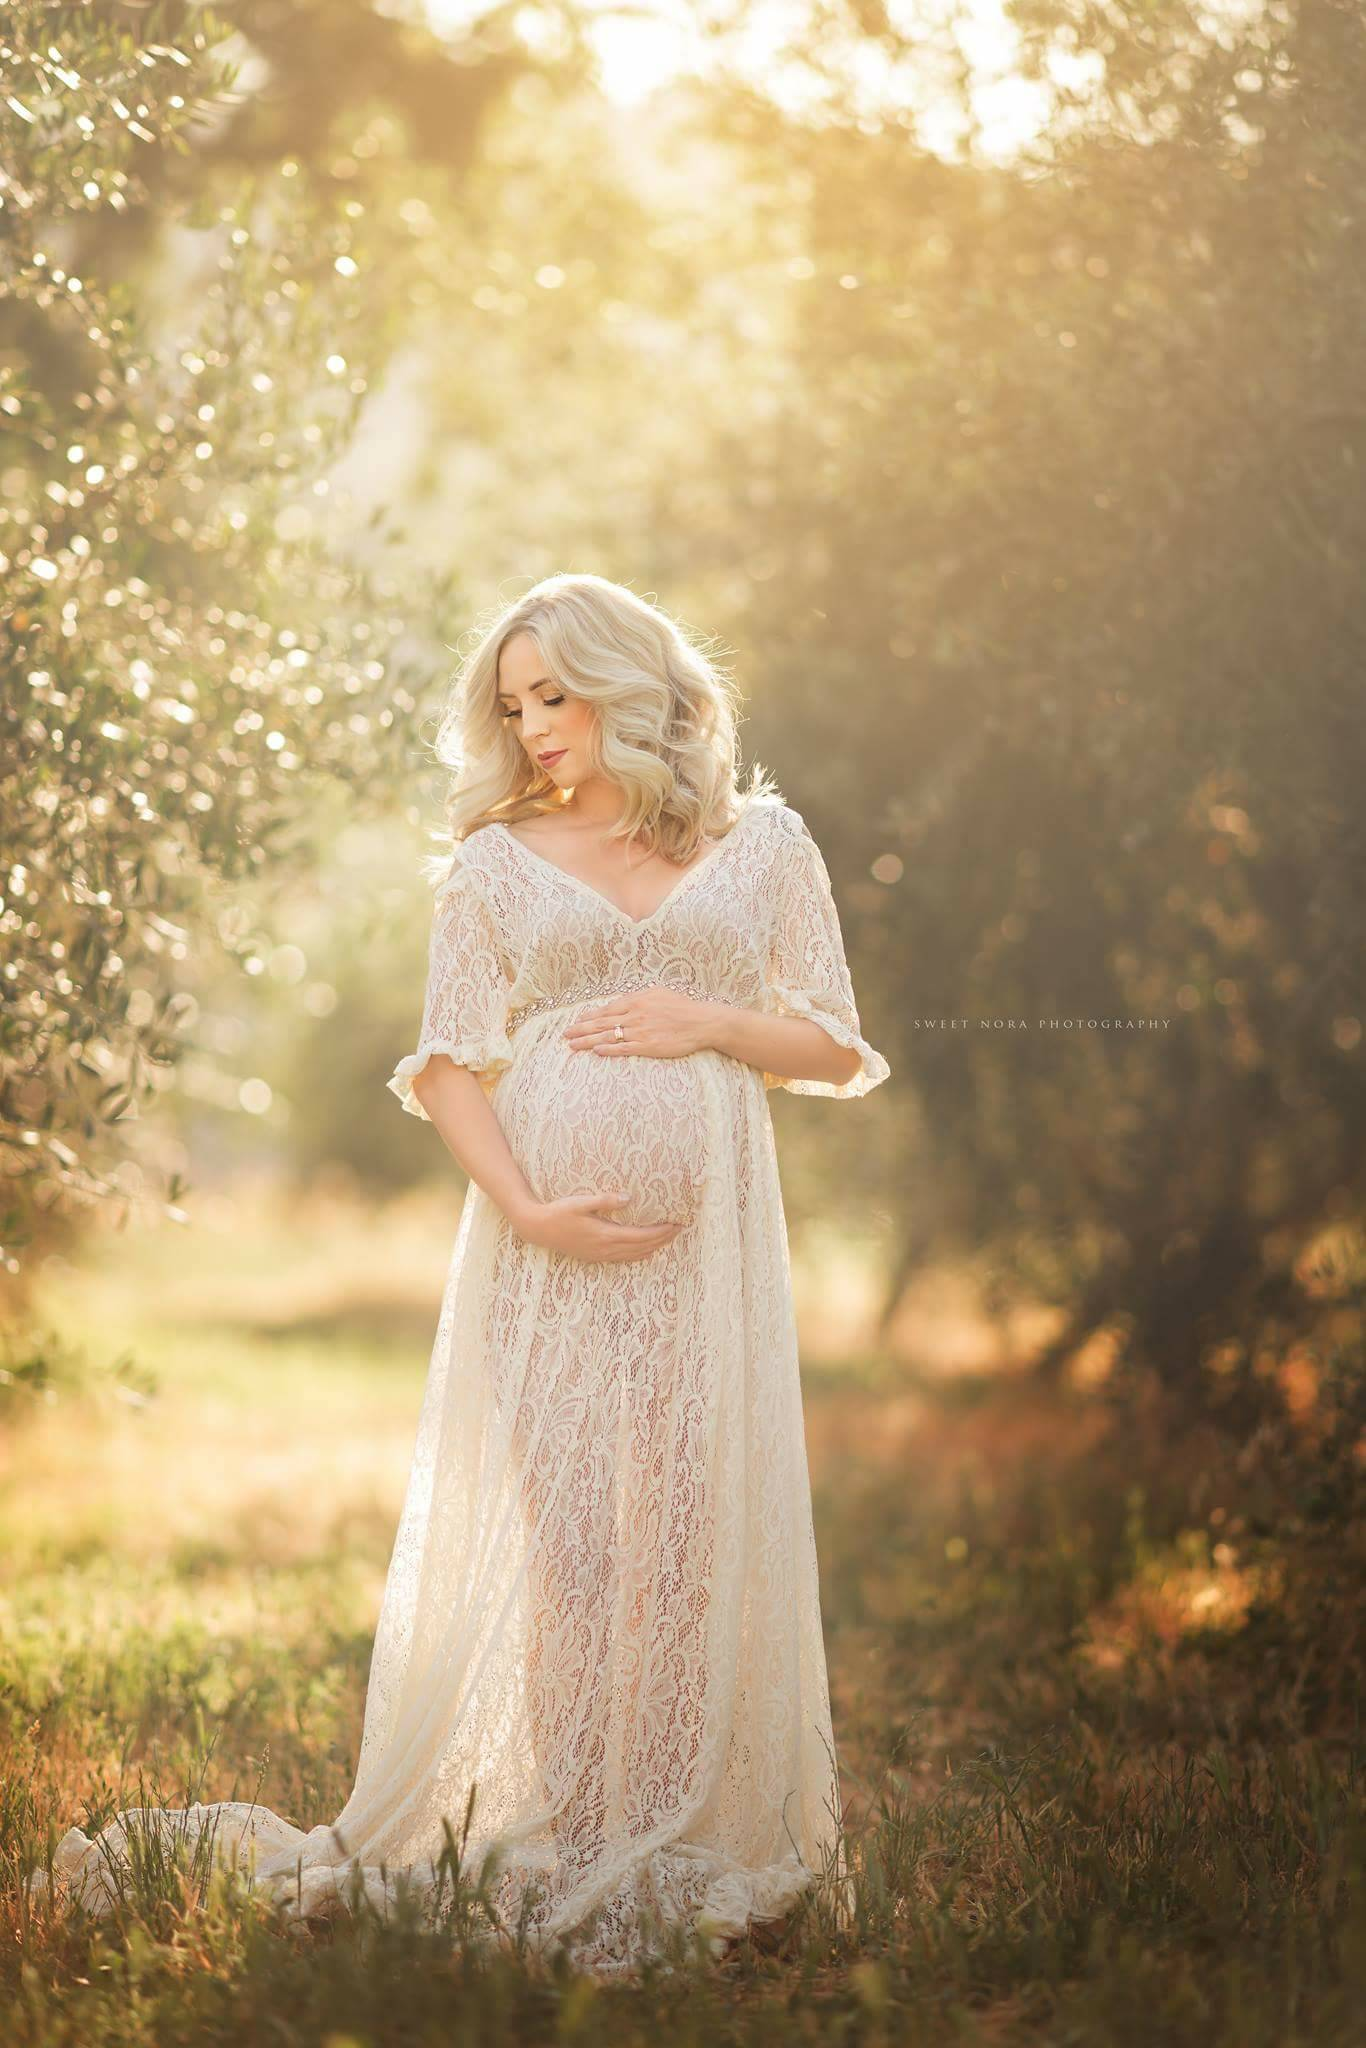 Kelley Lace Maternity Dress for photoshoot